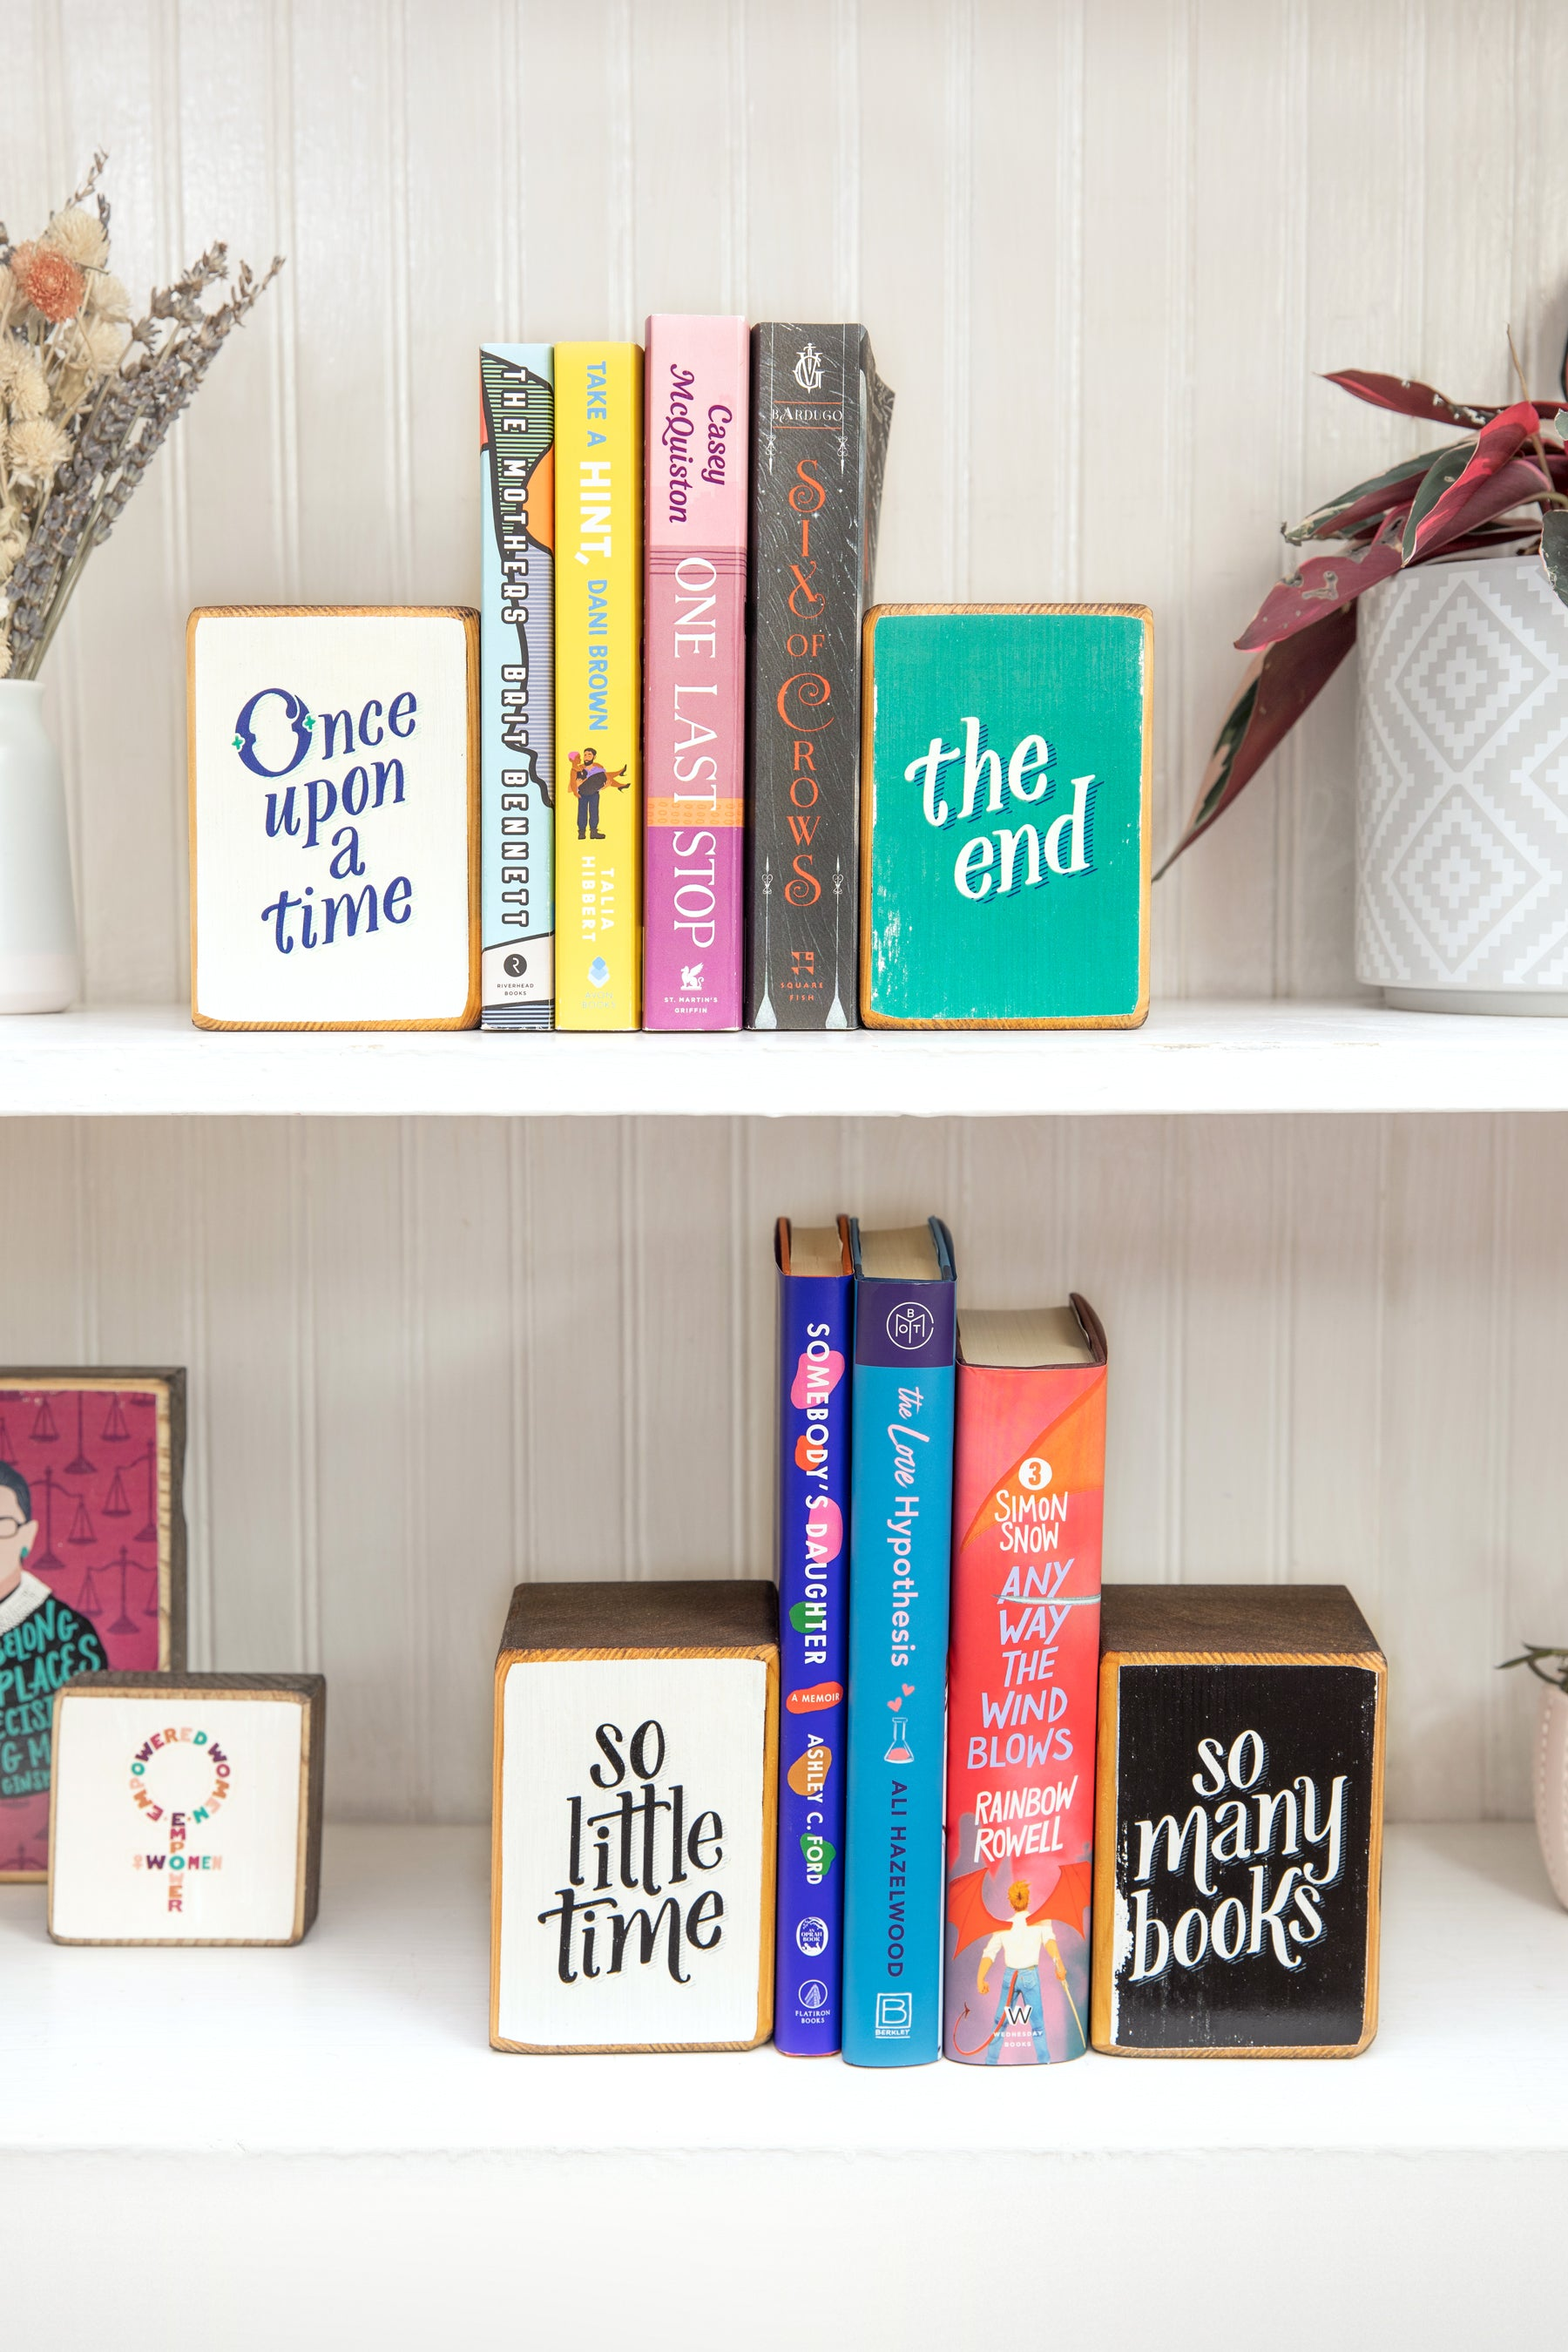 ARCHd wood bookend sets, with 7 books by women authors you should read